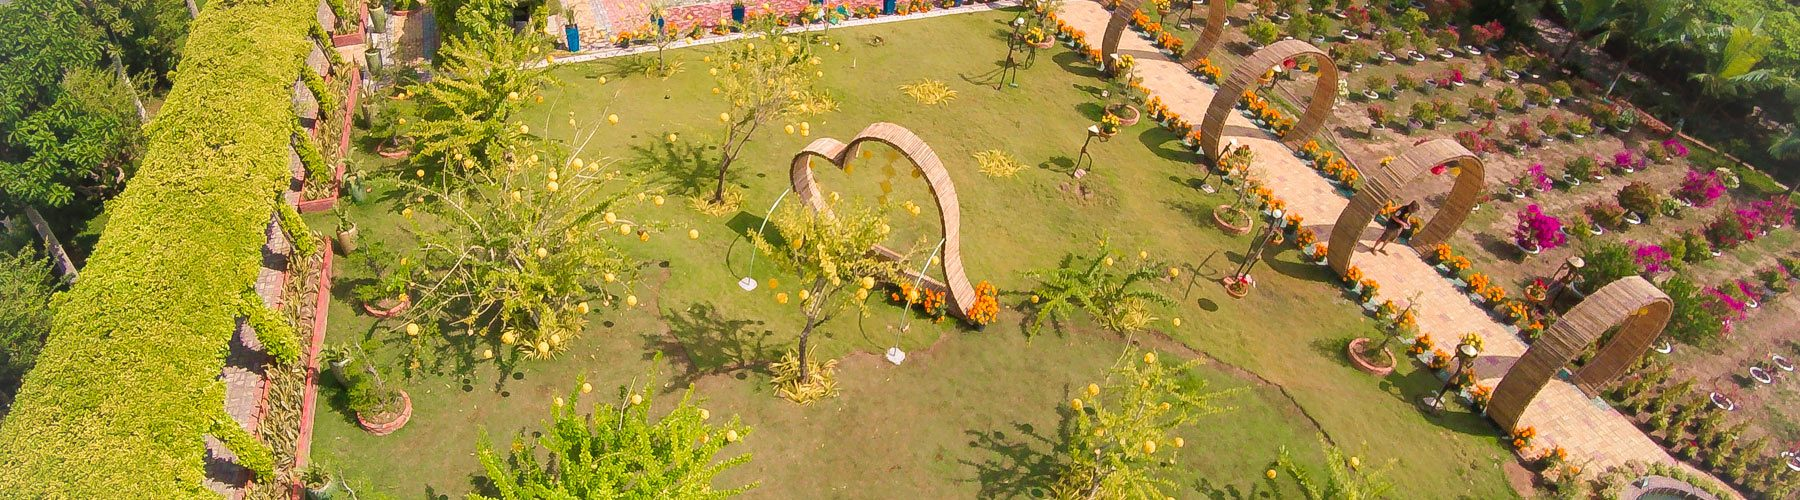 Vietnamese garden resort with tropical trees, flower garden, a sculpted heart in the middle and a fountain, drone aerial photography by Julien Thomas